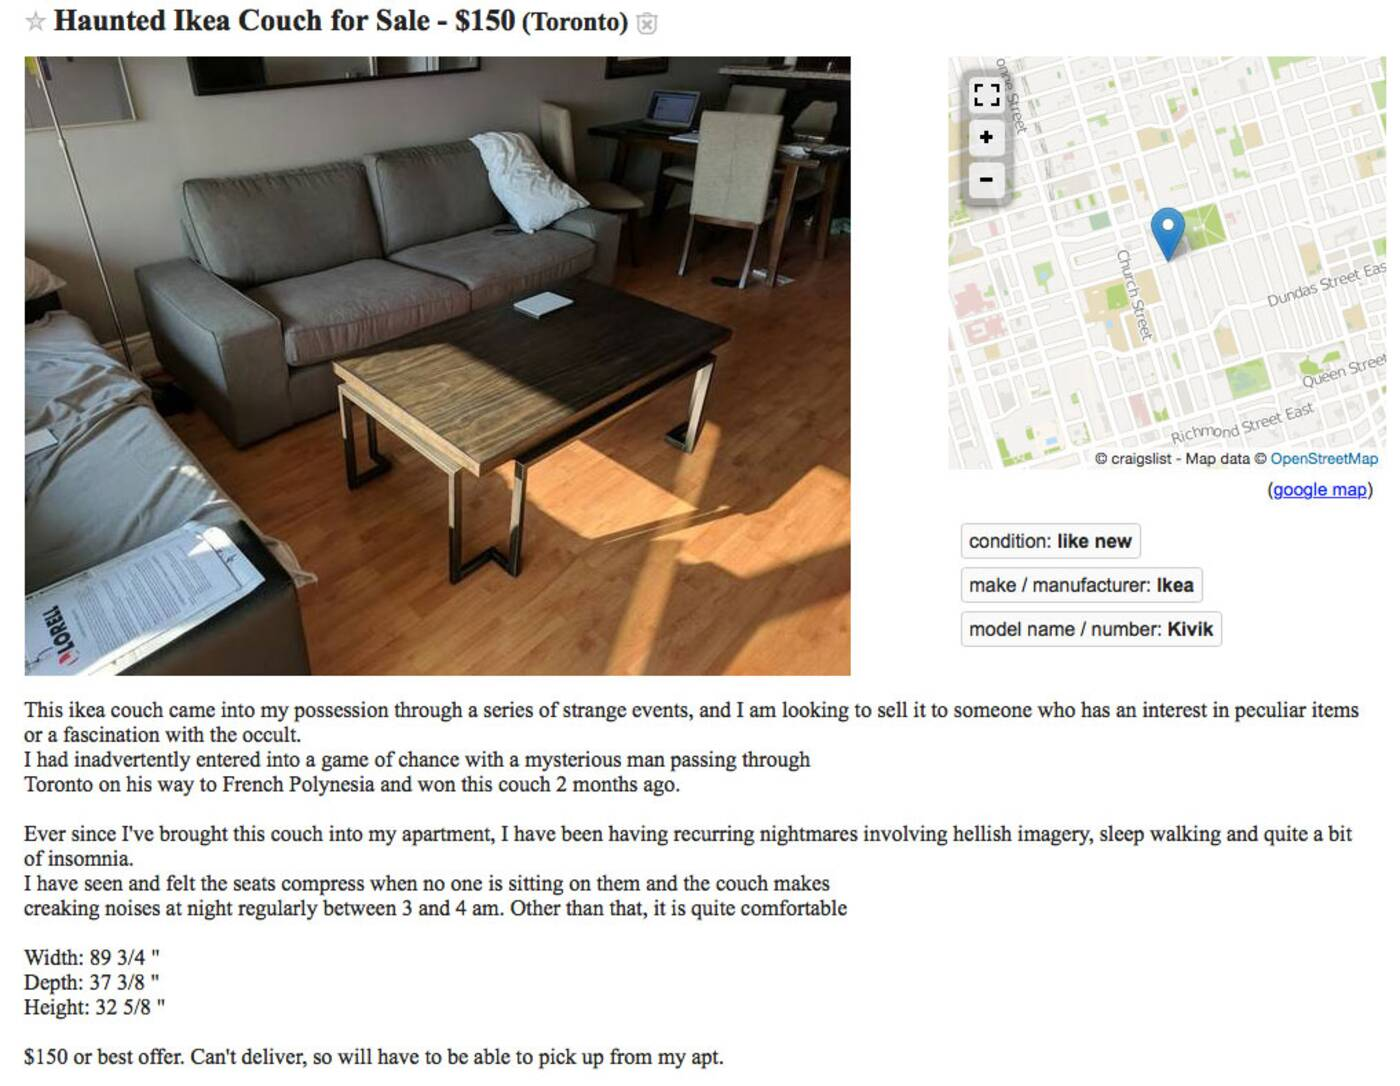 Haunted Ikea Couch